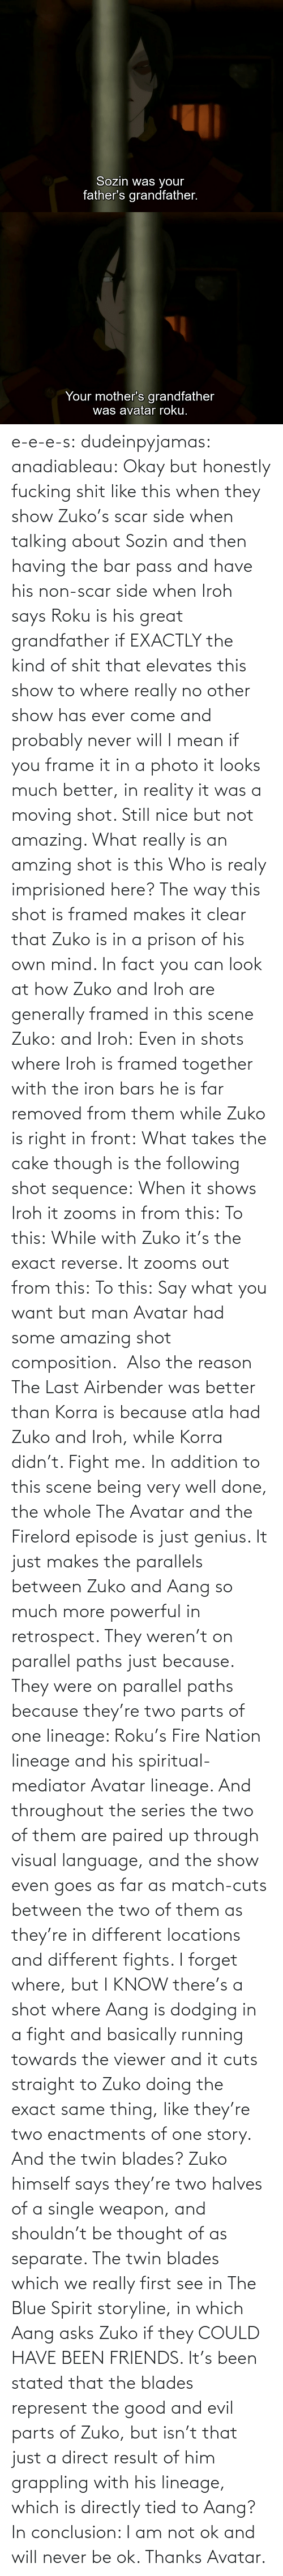 But I: e-e-e-s: dudeinpyjamas:   anadiableau: Okay but honestly fucking shit like this when they show Zuko's scar side when talking about Sozin and then having the bar pass and have his non-scar side when Iroh says Roku is his great grandfather if EXACTLY the kind of shit that elevates this show to where really no other show has ever come and probably never will I mean if you frame it in a photo it looks much better, in reality it was a moving shot. Still nice but not amazing. What really is an amzing shot is this Who is realy imprisioned here? The way this shot is framed makes it clear that Zuko is in a prison of his own mind. In fact you can look at how Zuko and Iroh are generally framed in this scene Zuko: and Iroh: Even in shots where Iroh is framed together with the iron bars he is far removed from them while Zuko is right in front:  What takes the cake though is the following shot sequence: When it shows Iroh it zooms in from this: To this: While with Zuko it's the exact reverse. It zooms out from this: To this: Say what you want but man Avatar had some amazing shot composition.   Also the reason The Last Airbender was better than Korra is because atla had Zuko and Iroh, while Korra didn't. Fight me.    In addition to this scene being very well done, the whole The Avatar and the Firelord episode is just genius.  It just makes the parallels between Zuko and Aang so much more powerful in retrospect.  They weren't on parallel paths just because.  They were on parallel paths because they're two parts of one lineage: Roku's Fire Nation lineage and his spiritual-mediator Avatar lineage.  And throughout the series the two of them are paired up through visual language, and the show even goes as far as match-cuts between the two of them as they're in different locations and different fights.  I forget where, but I KNOW there's a shot where Aang is dodging in a fight and basically running towards the viewer and it cuts straight to Zuko doing the exact same thing, like they're two enactments of one story.   And the twin blades?  Zuko himself says they're two halves of a single weapon, and shouldn't be thought of as separate.  The twin blades which we really first see in The Blue Spirit storyline, in which Aang asks Zuko if they COULD HAVE BEEN FRIENDS.  It's been stated that the blades represent the good and evil parts of Zuko, but isn't that just a direct result of him grappling with his lineage, which is directly tied to Aang? In conclusion: I am not ok and will never be ok.  Thanks Avatar.